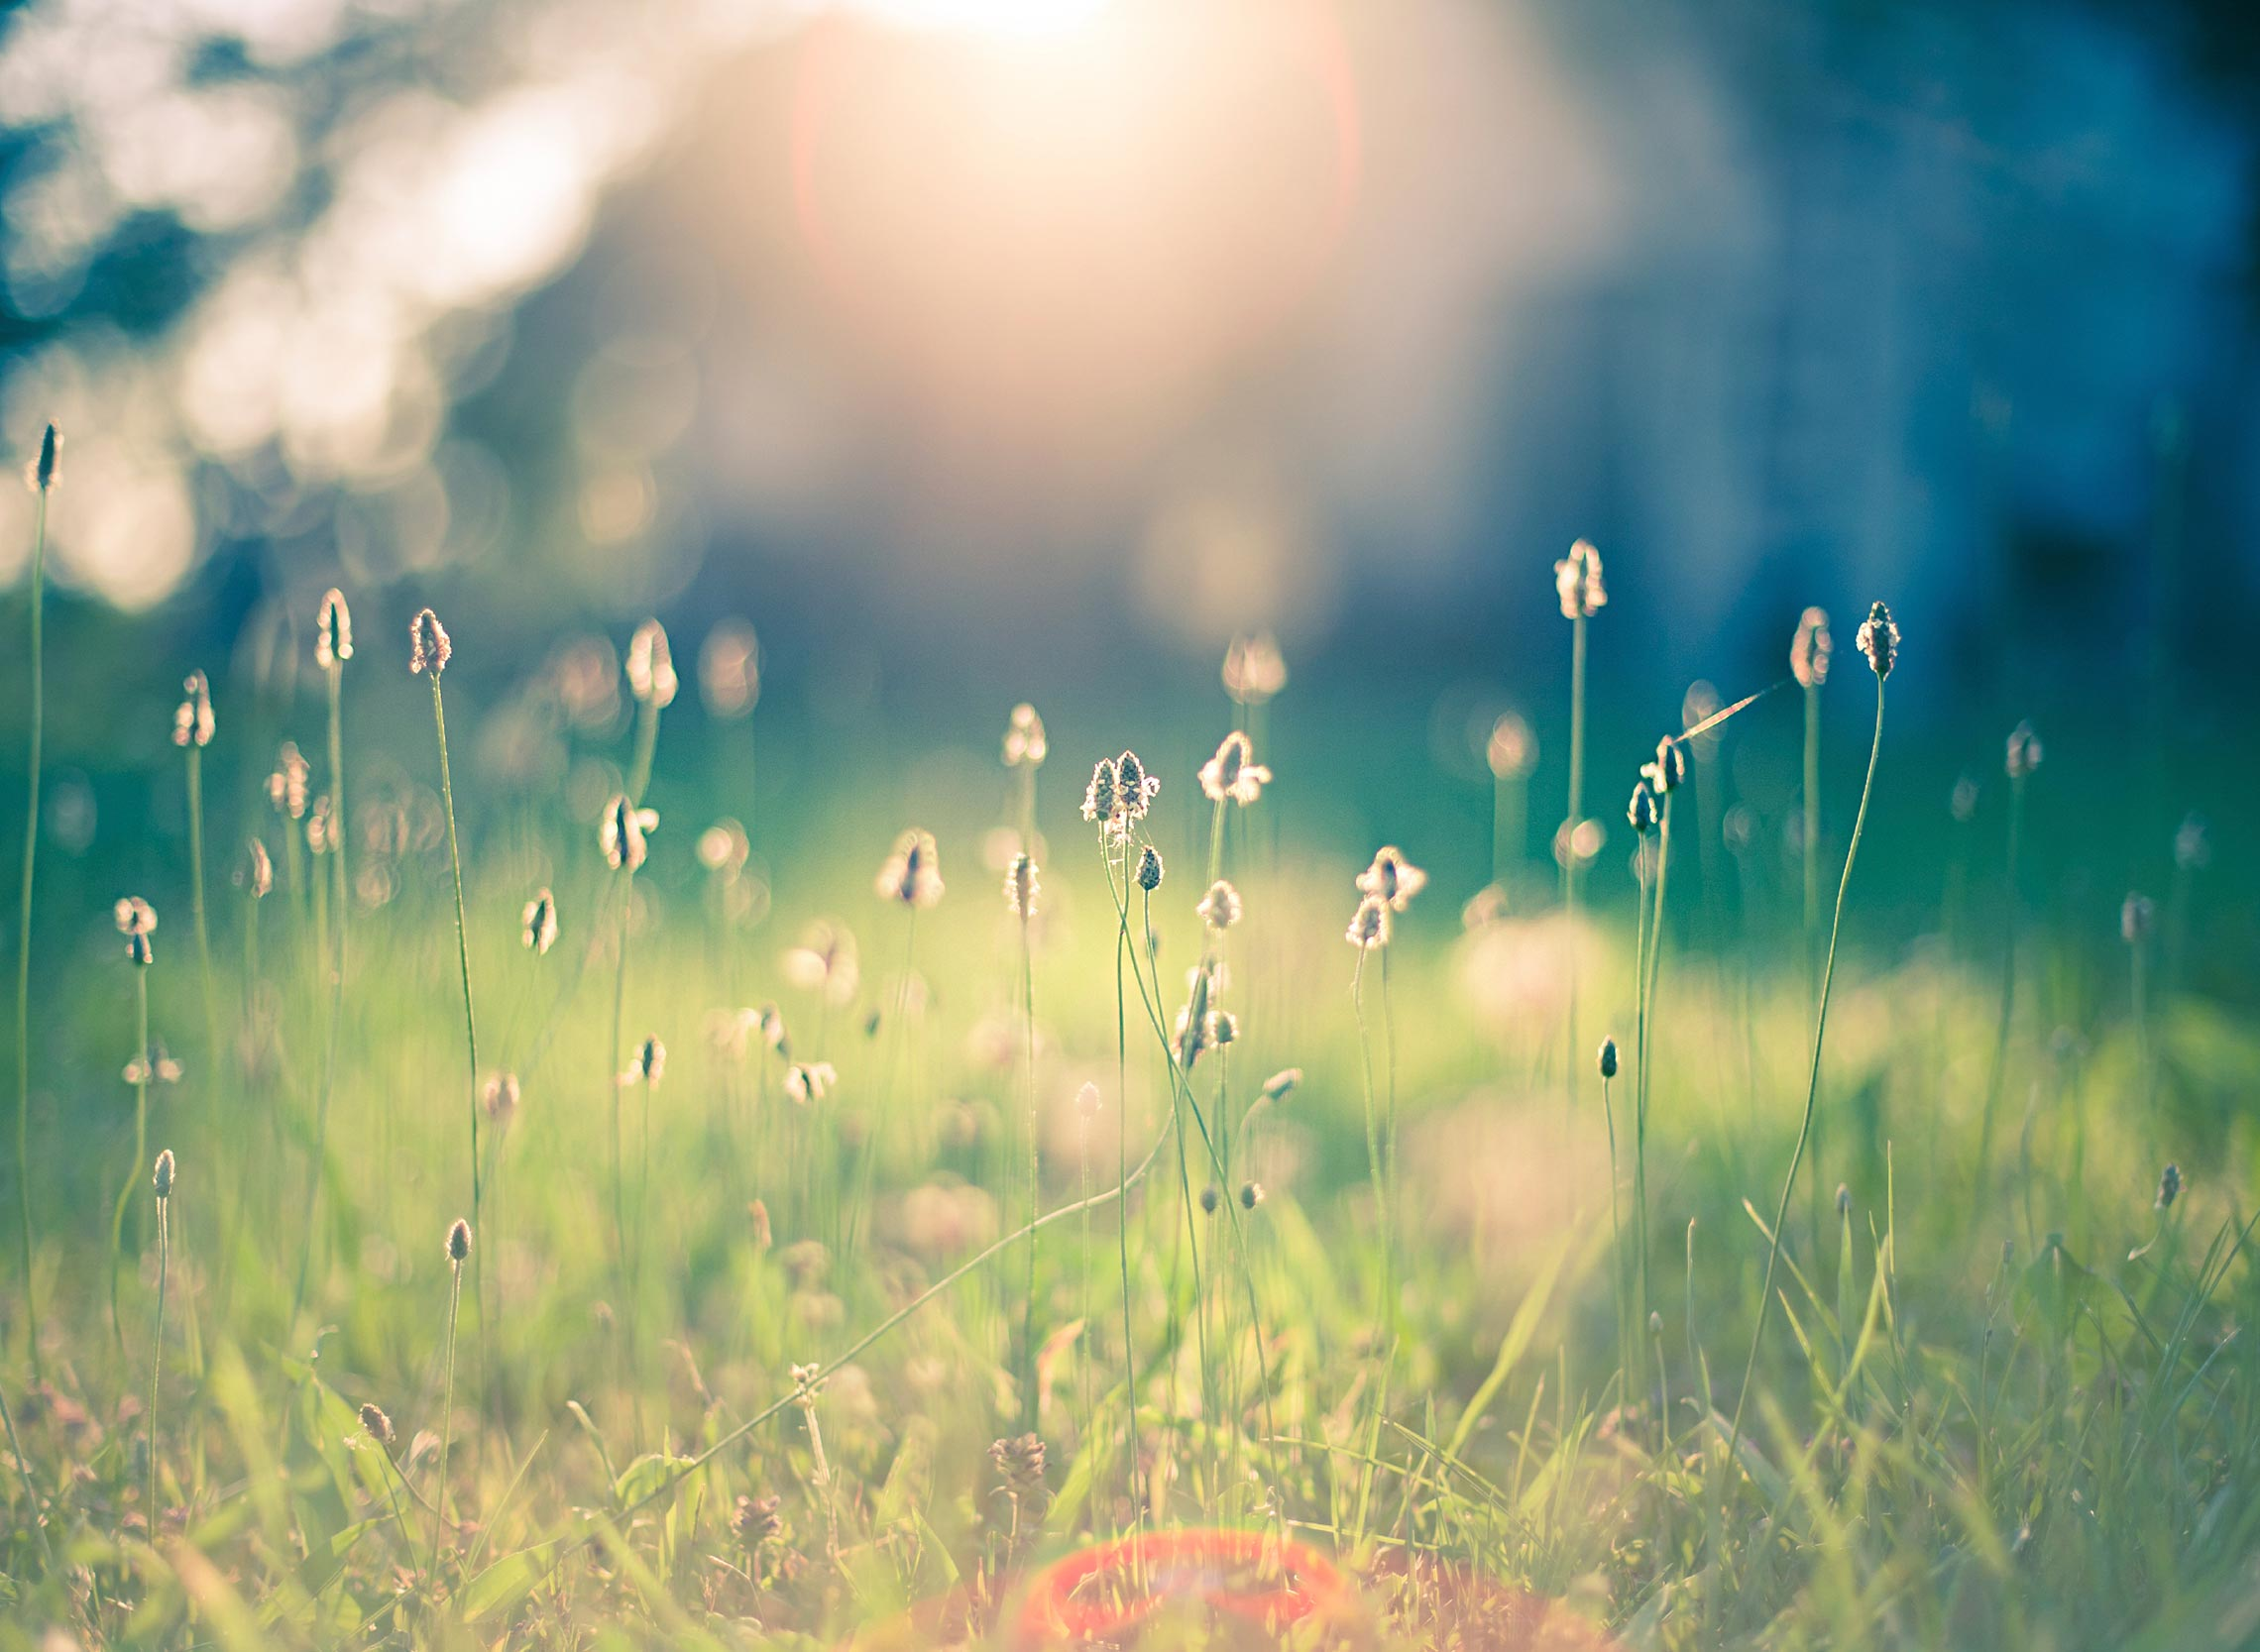 http://cdn2.editmysite.com/images/editor/theme-background/stock/Meadow-Morning.jpg